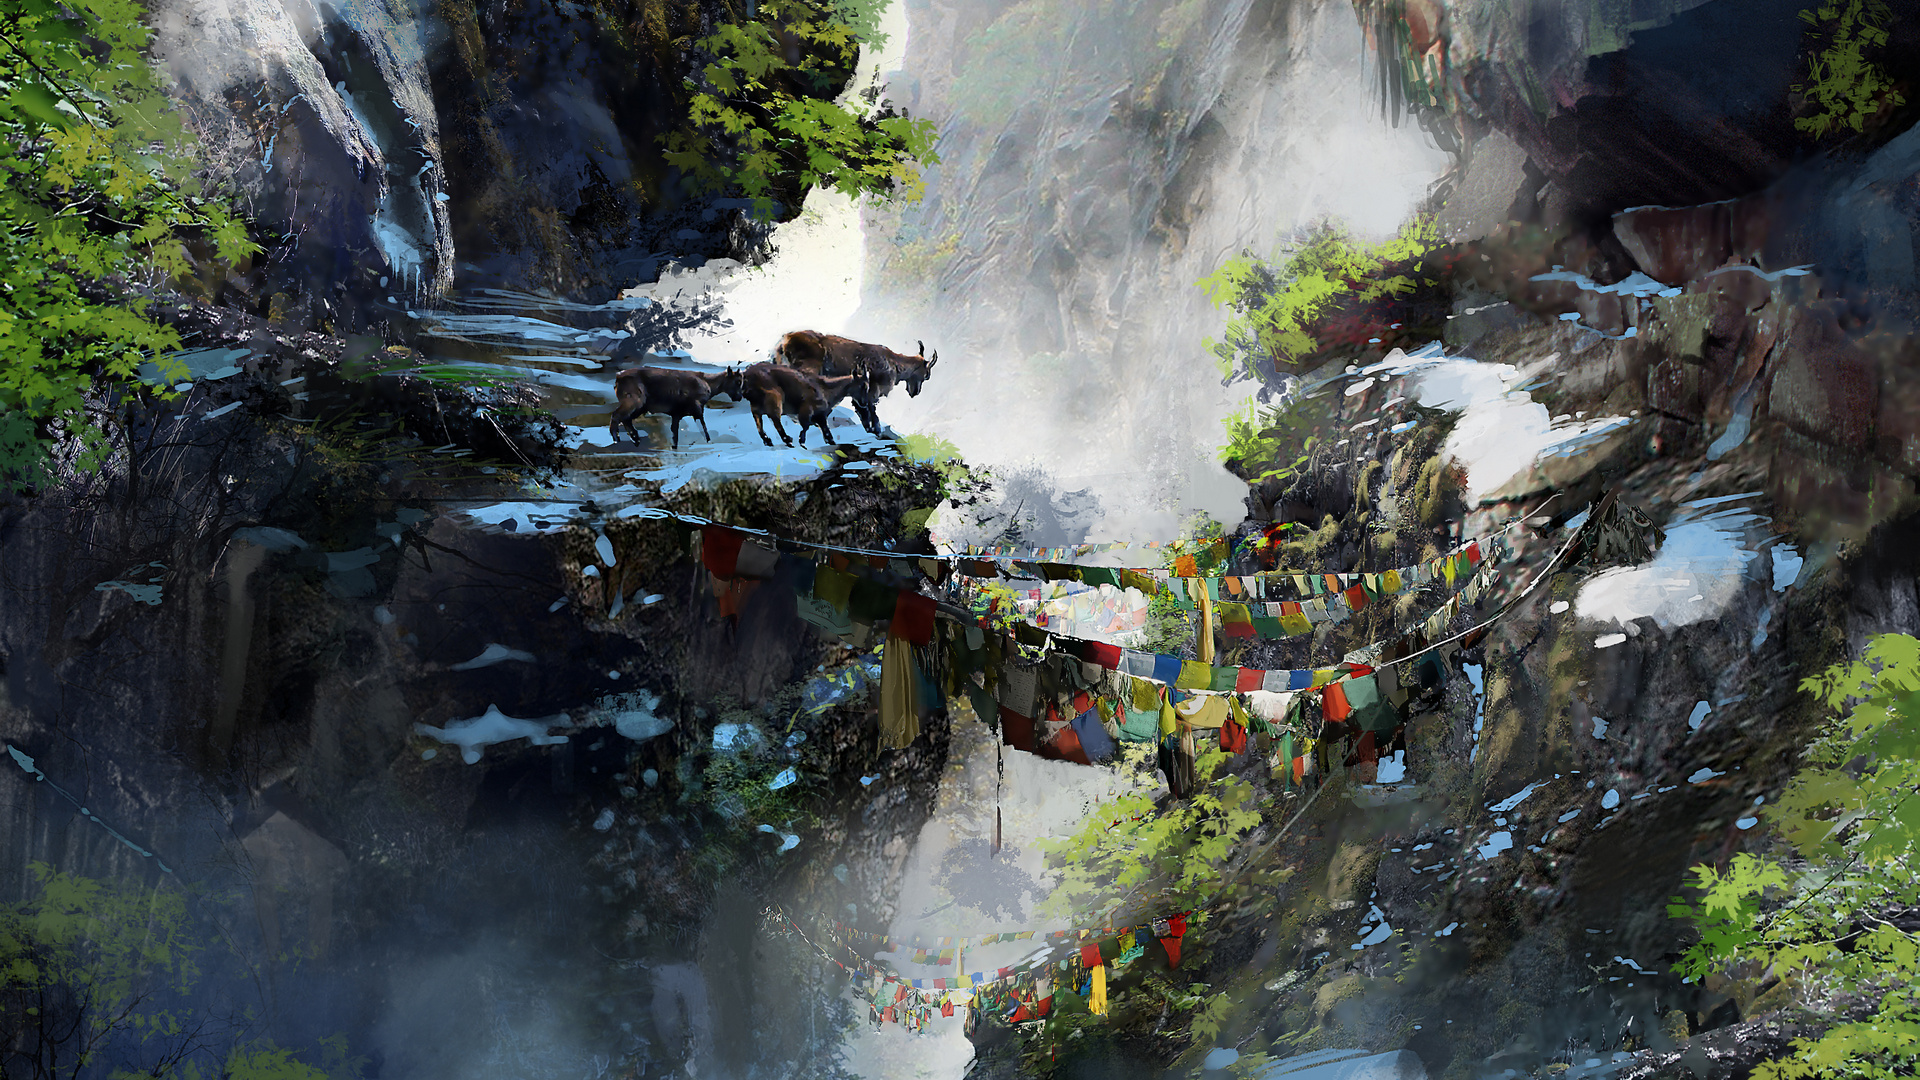 Far Cry 4 Wallpaper: Backgrounds - Wallpaper Abyss